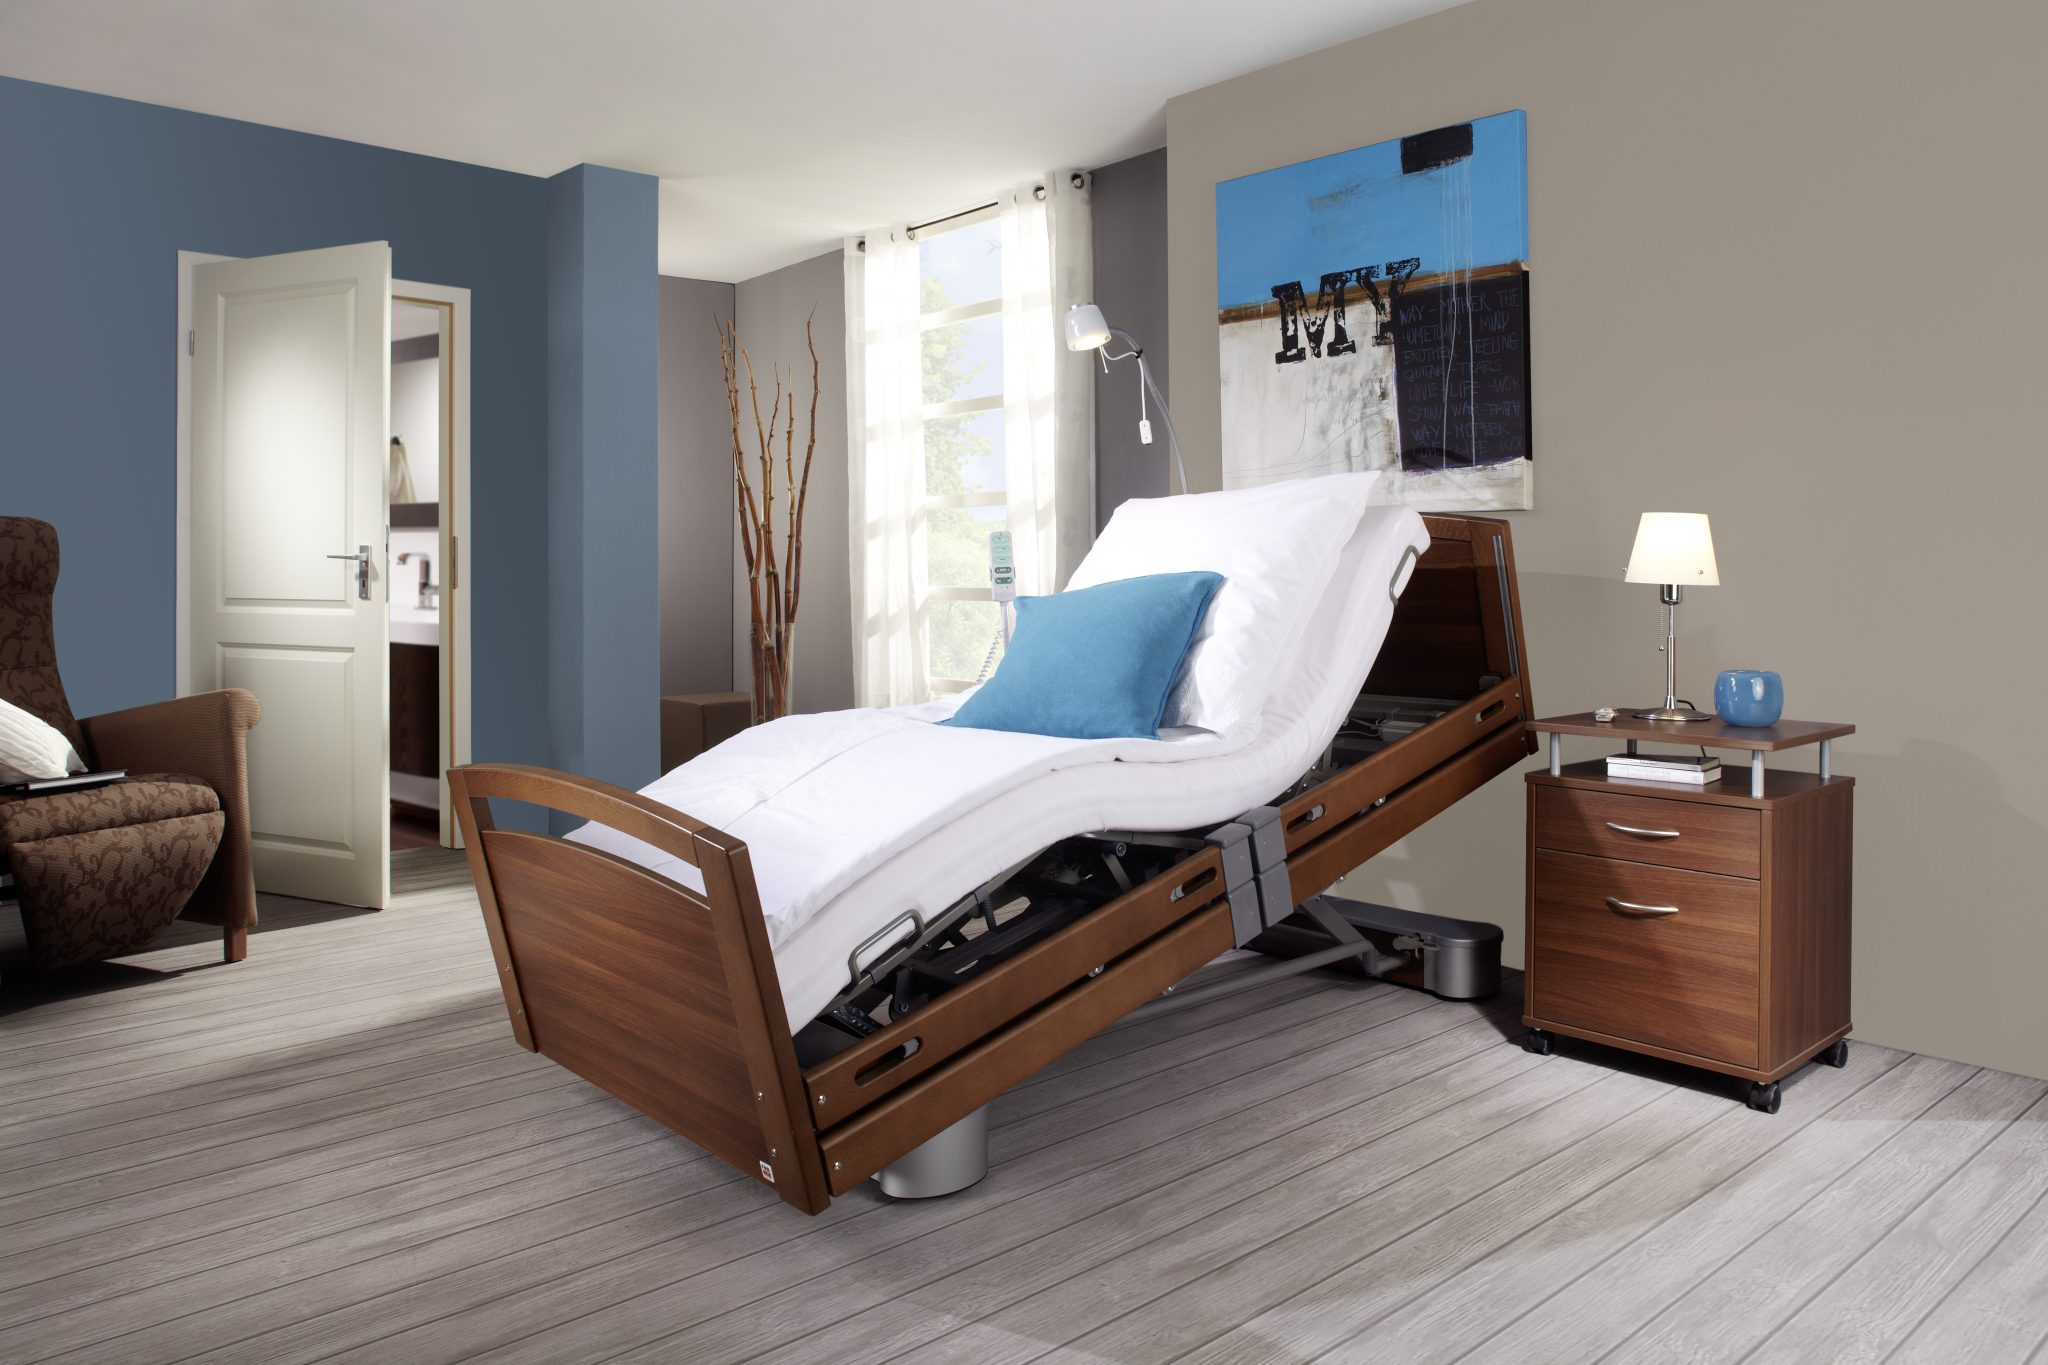 Picture of: What Is The Trendelenburg Position On Hospital Beds